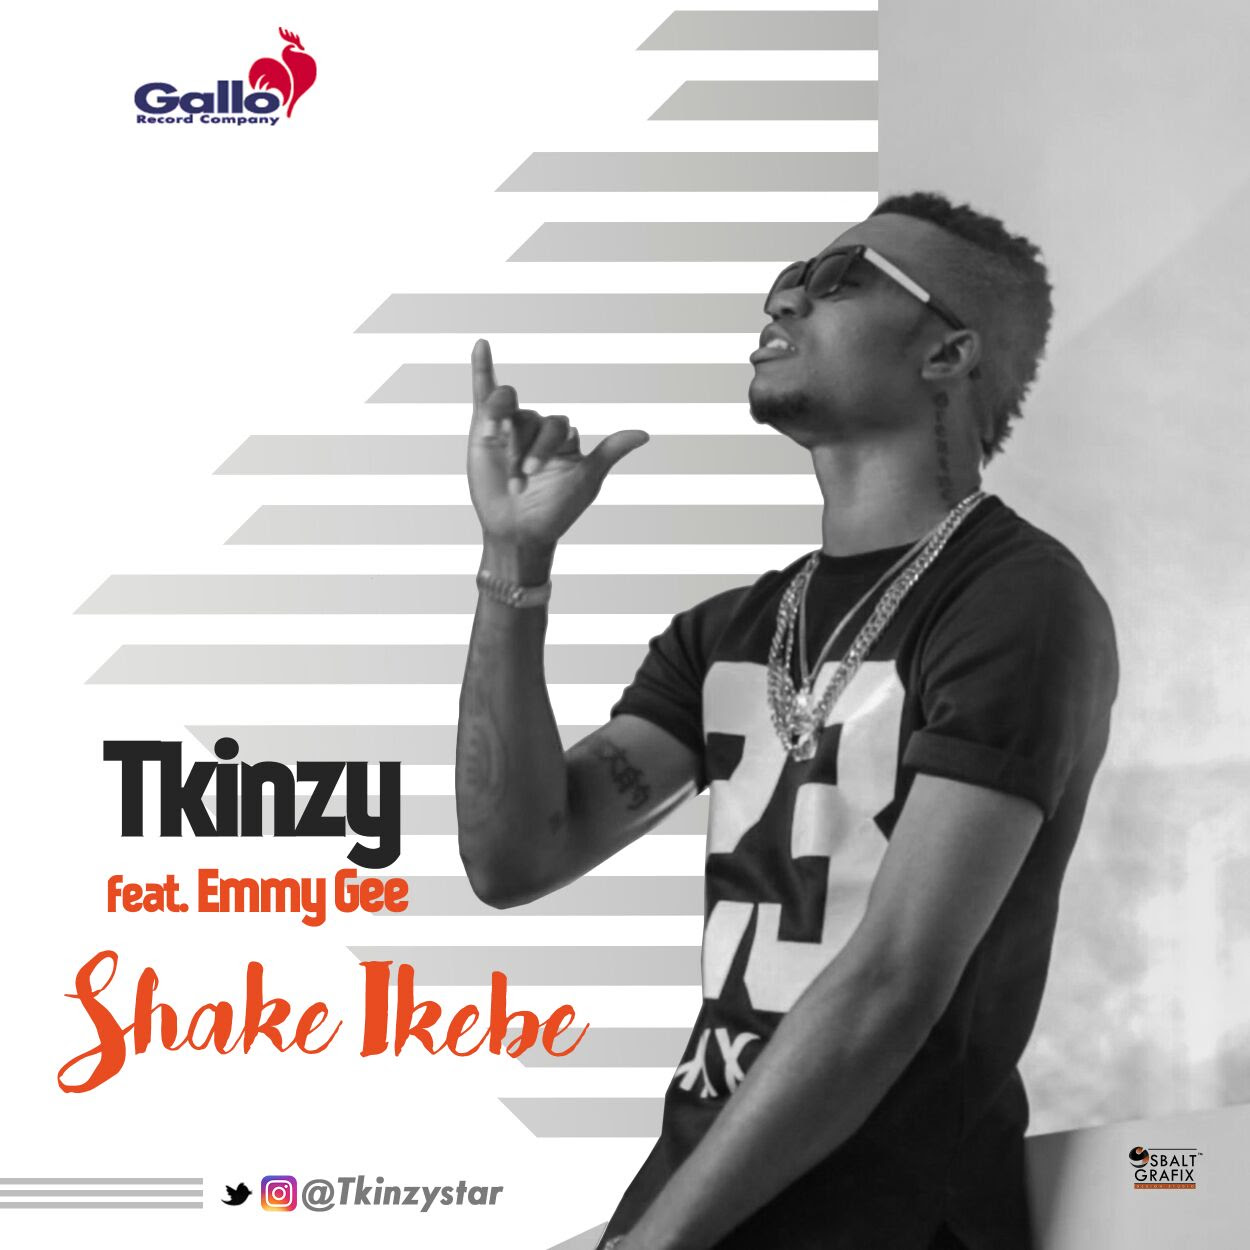 VIDEO: Tkinzy ft. Emmy Gee – Shake Ikebe